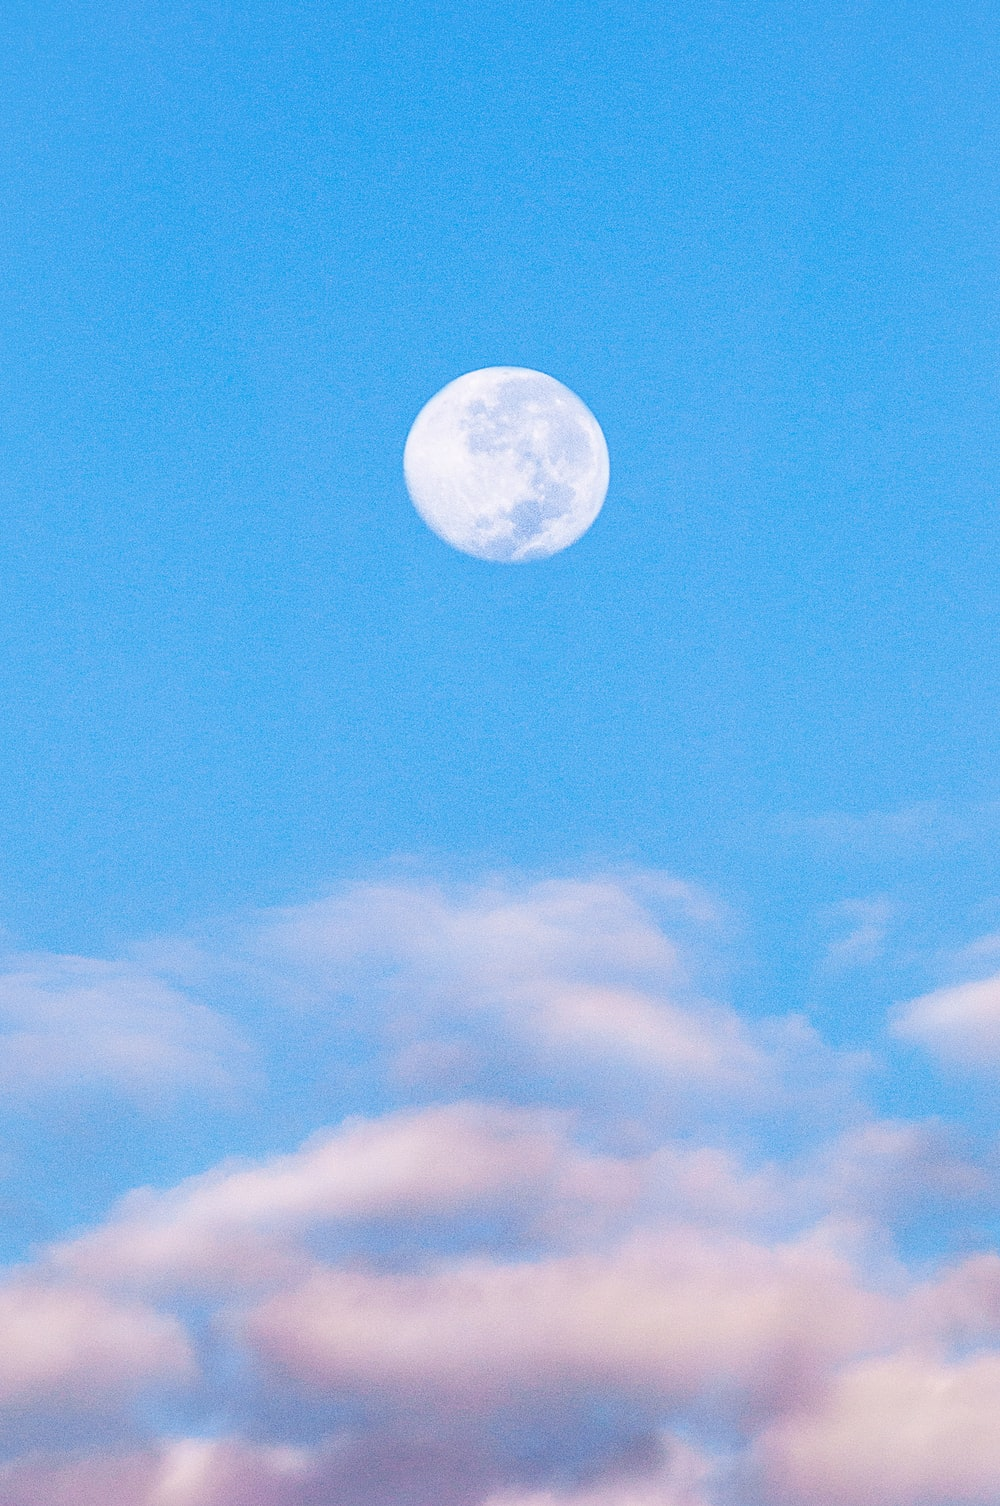 full moon in blue sky